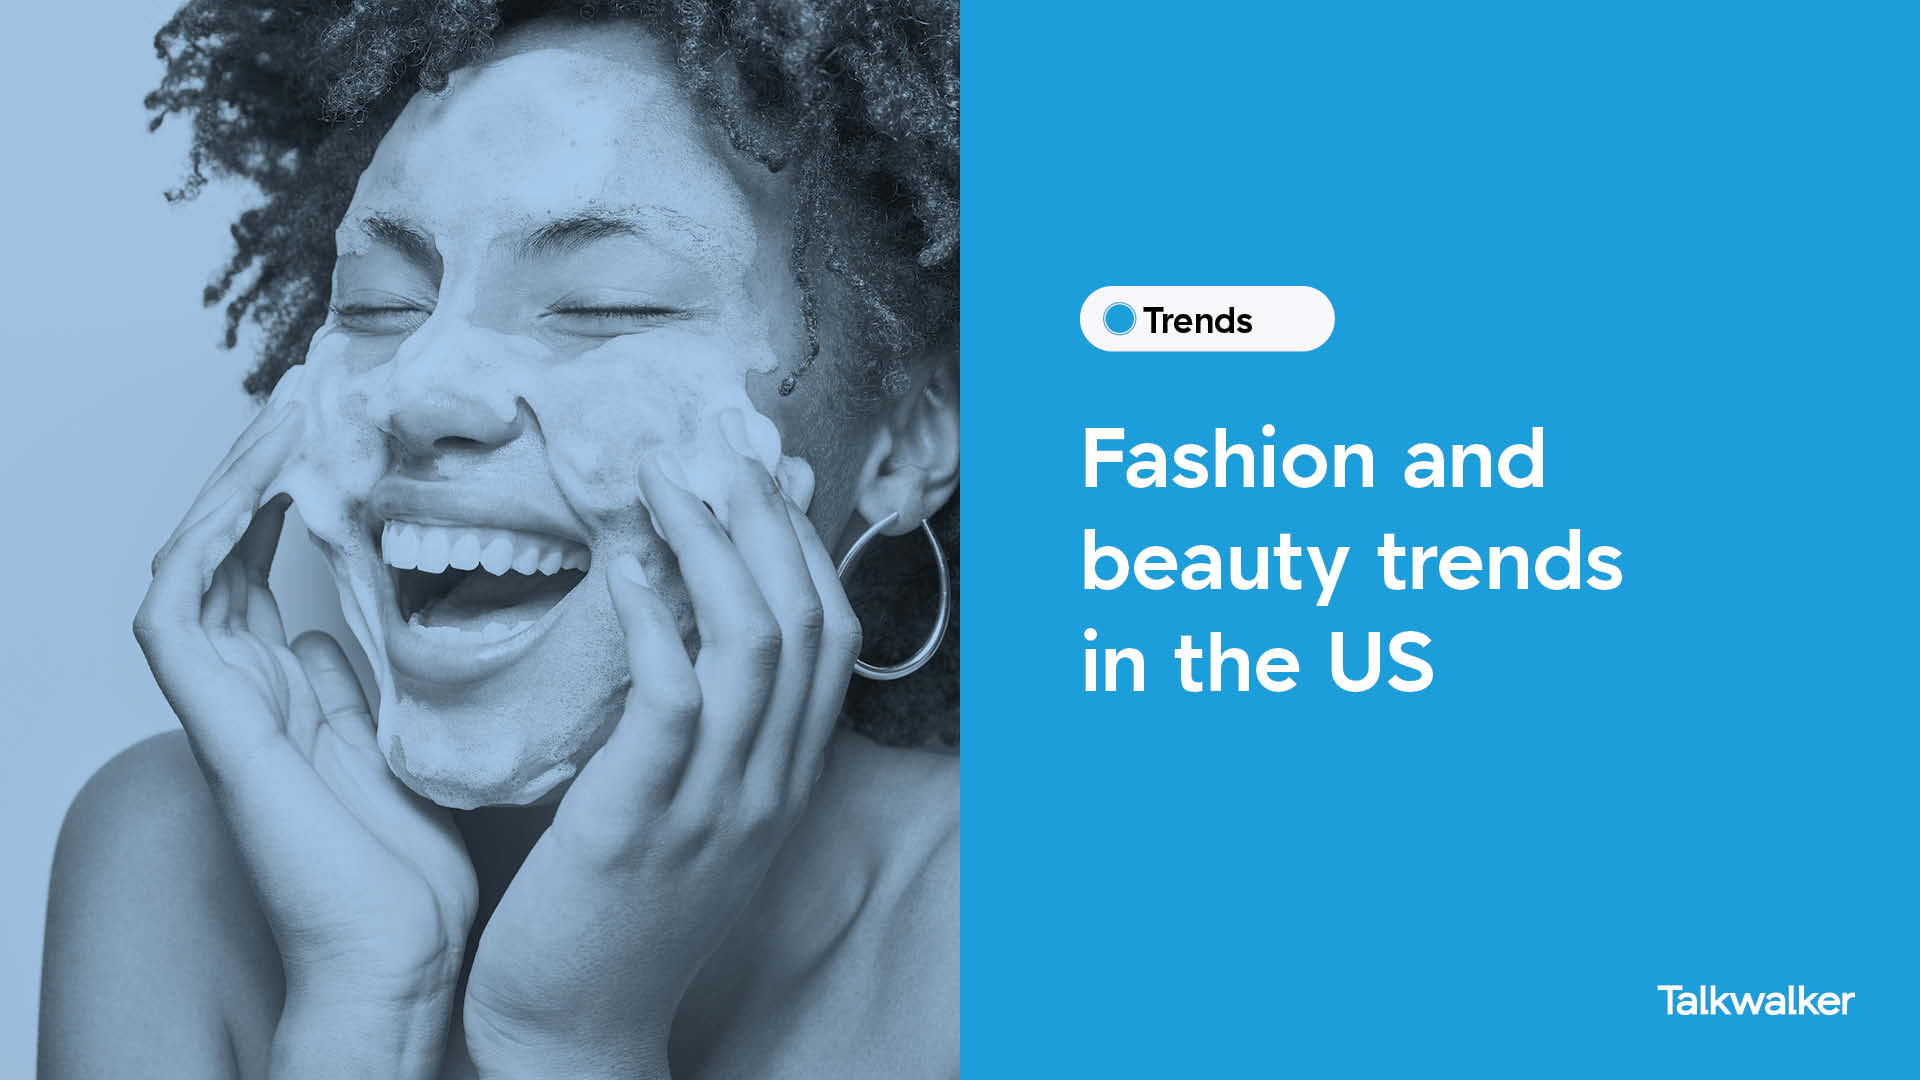 Fashion and beauty trends in the US